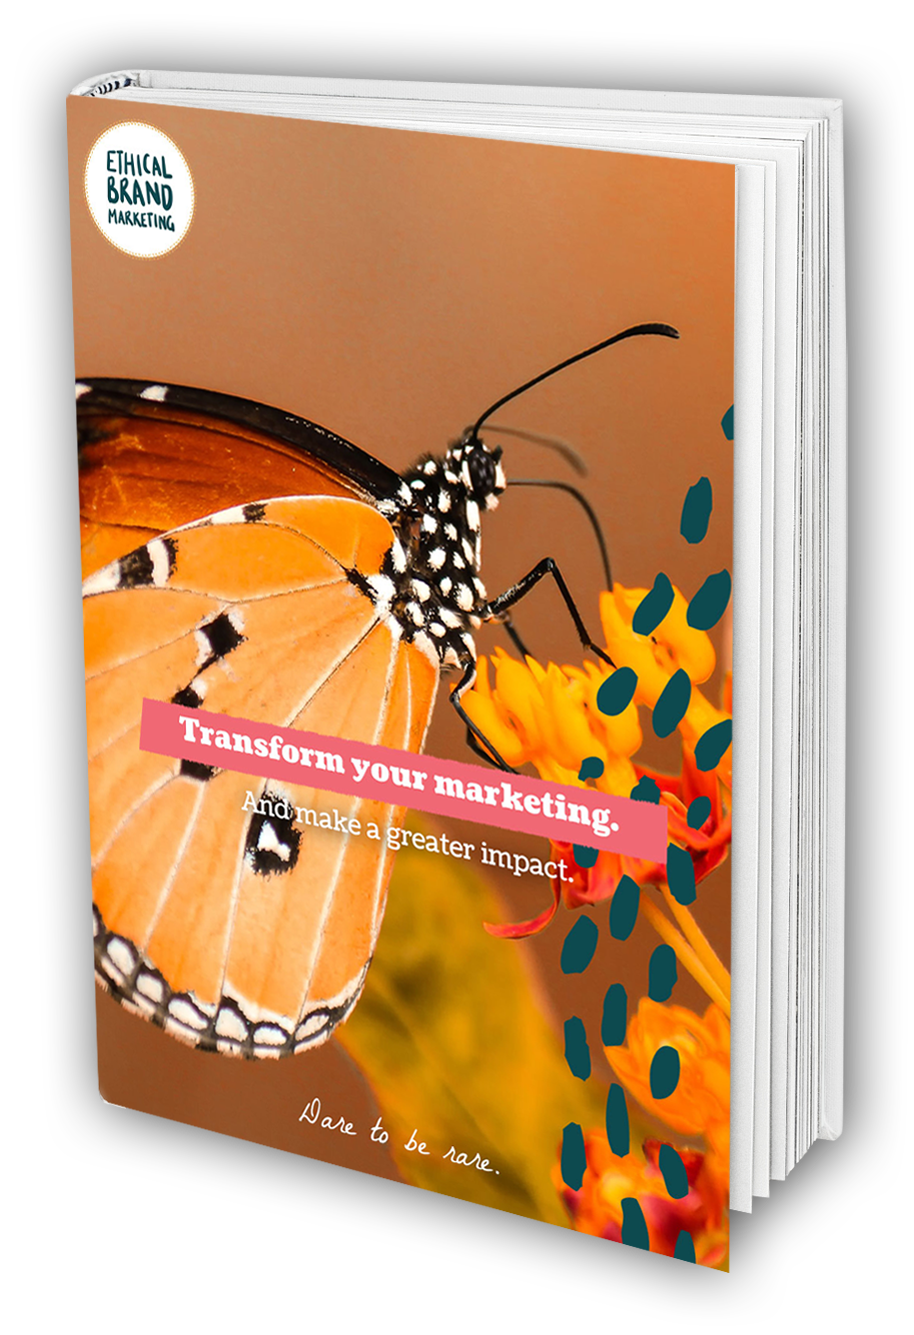 Download my eBook - Conscious Marketing for Ethical Brands: How to Naturally Turn Customers into Raving Fans